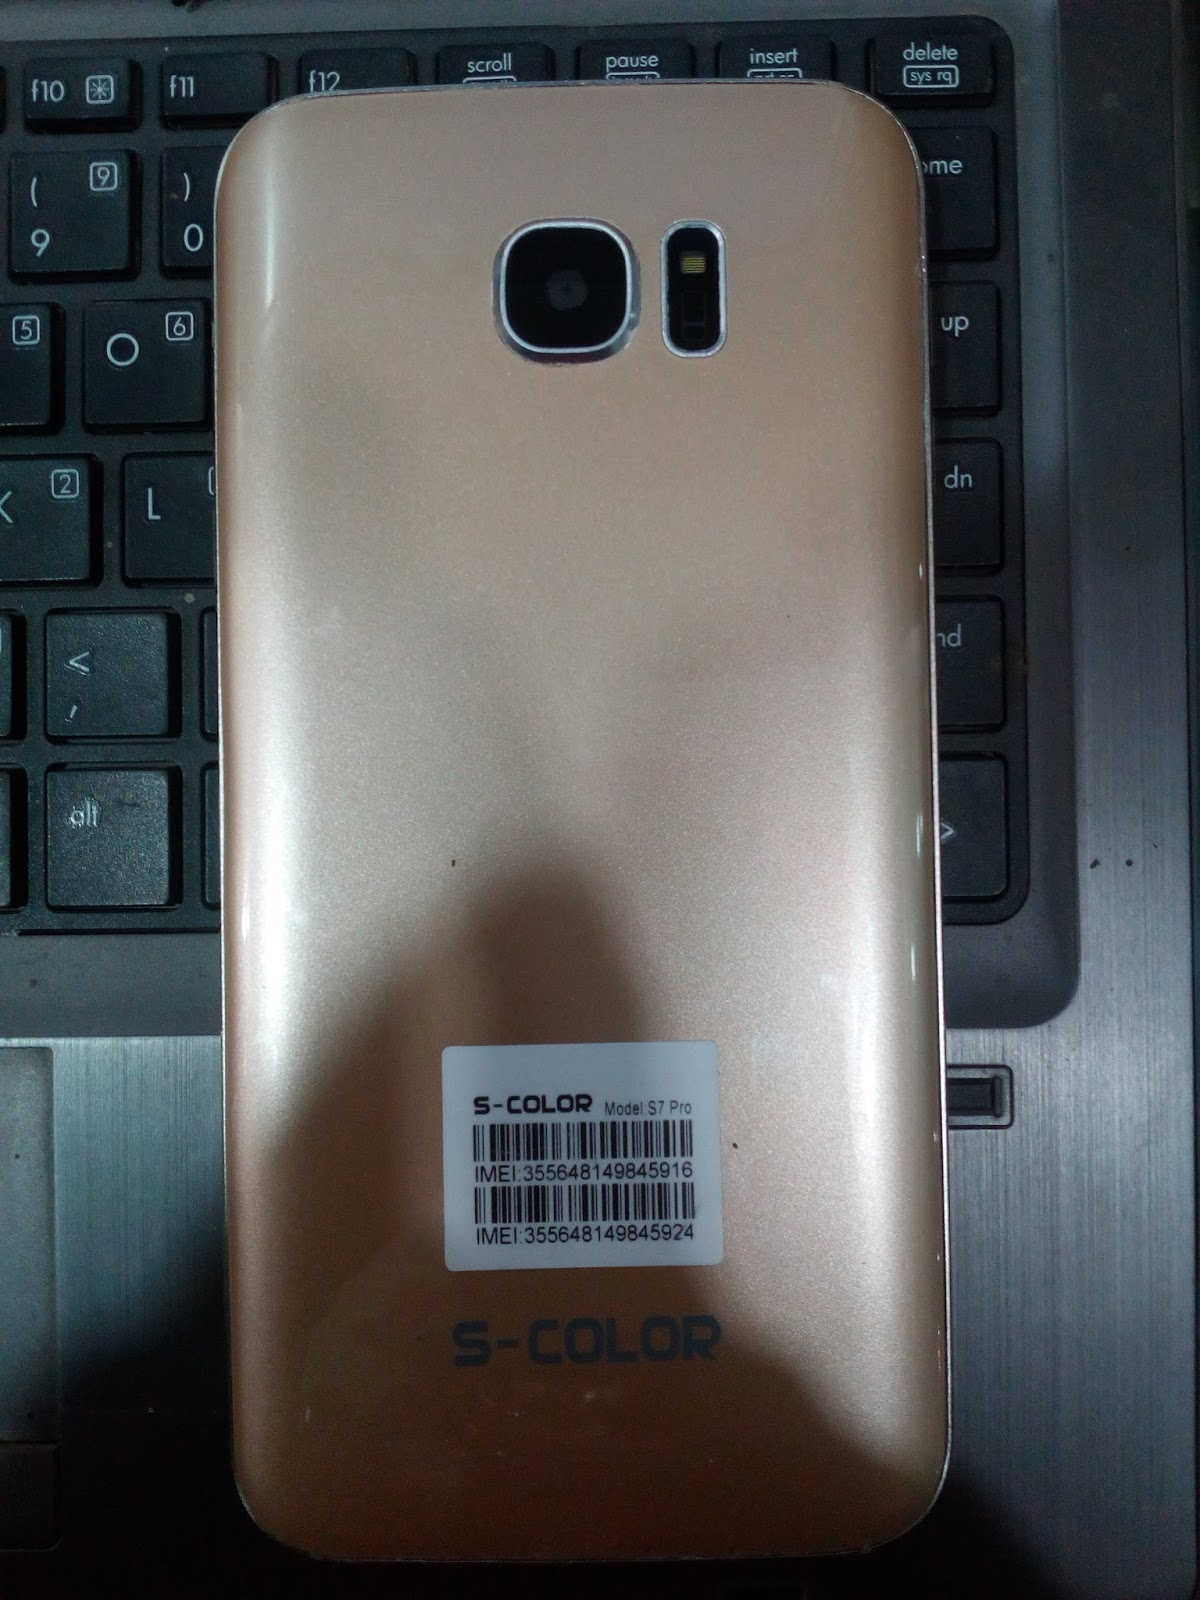 S-Color S7 Pro Flash File 100%Tested S-Color S7 Pro Firmware File